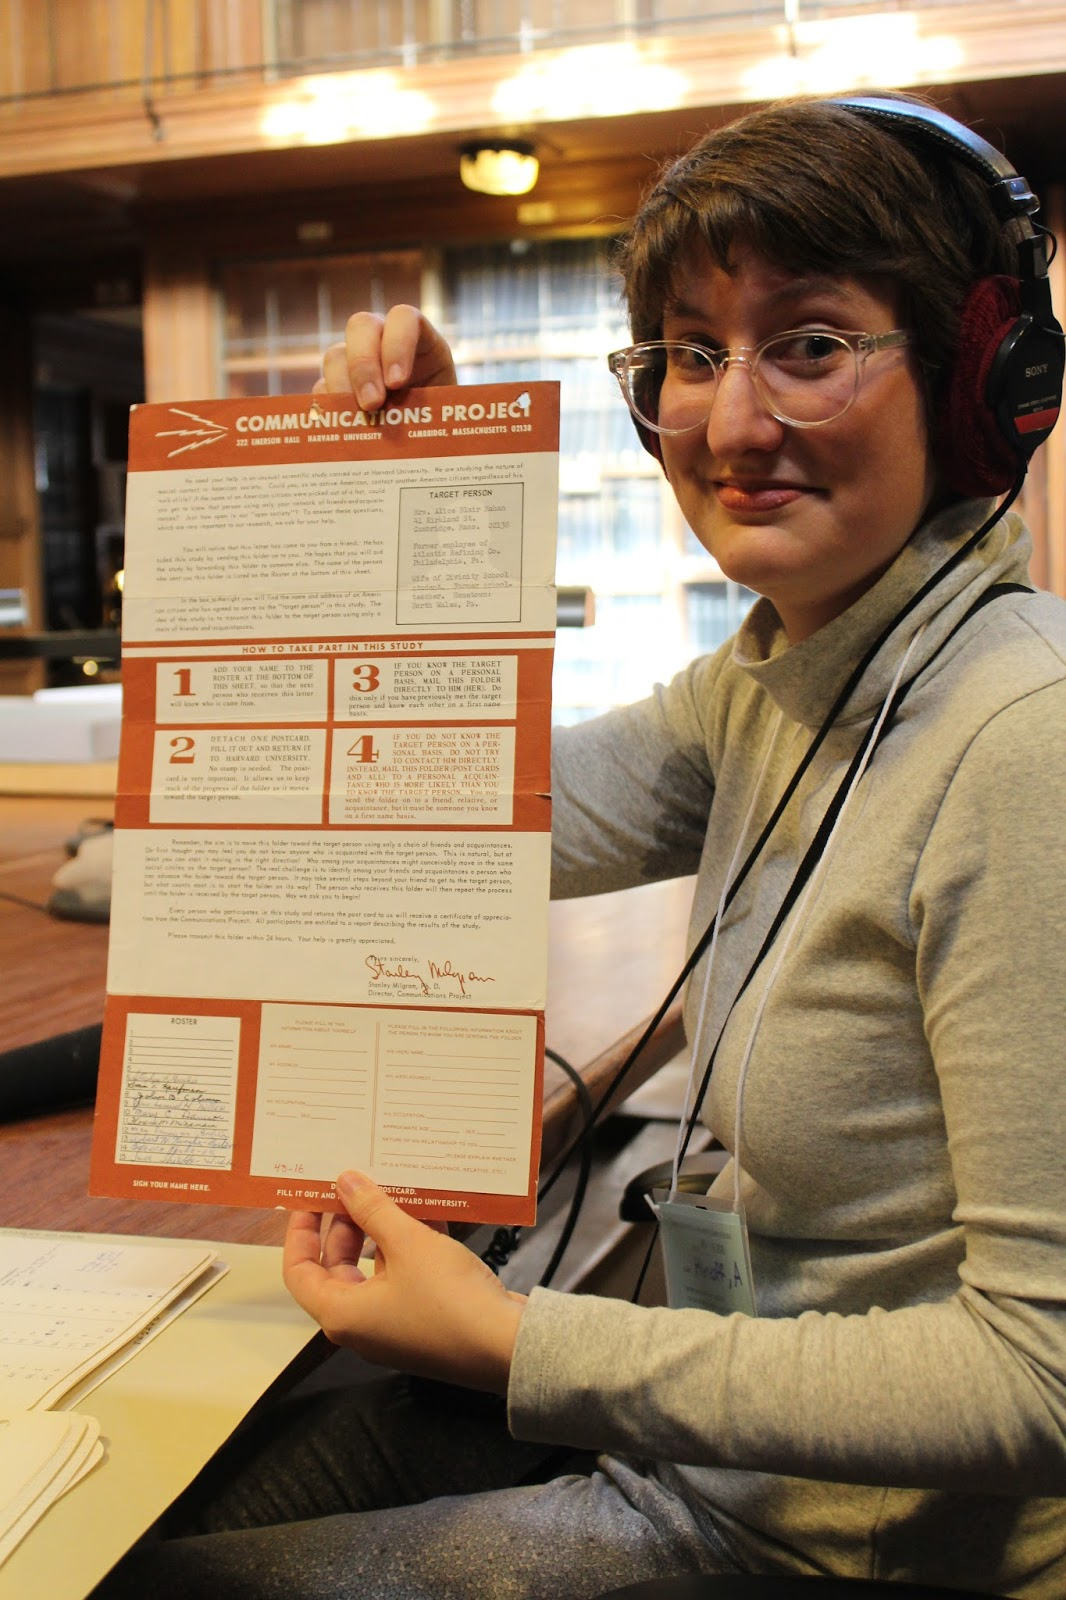 Producer Annie Minoff, with headphones on, holds up an old letter experiment.